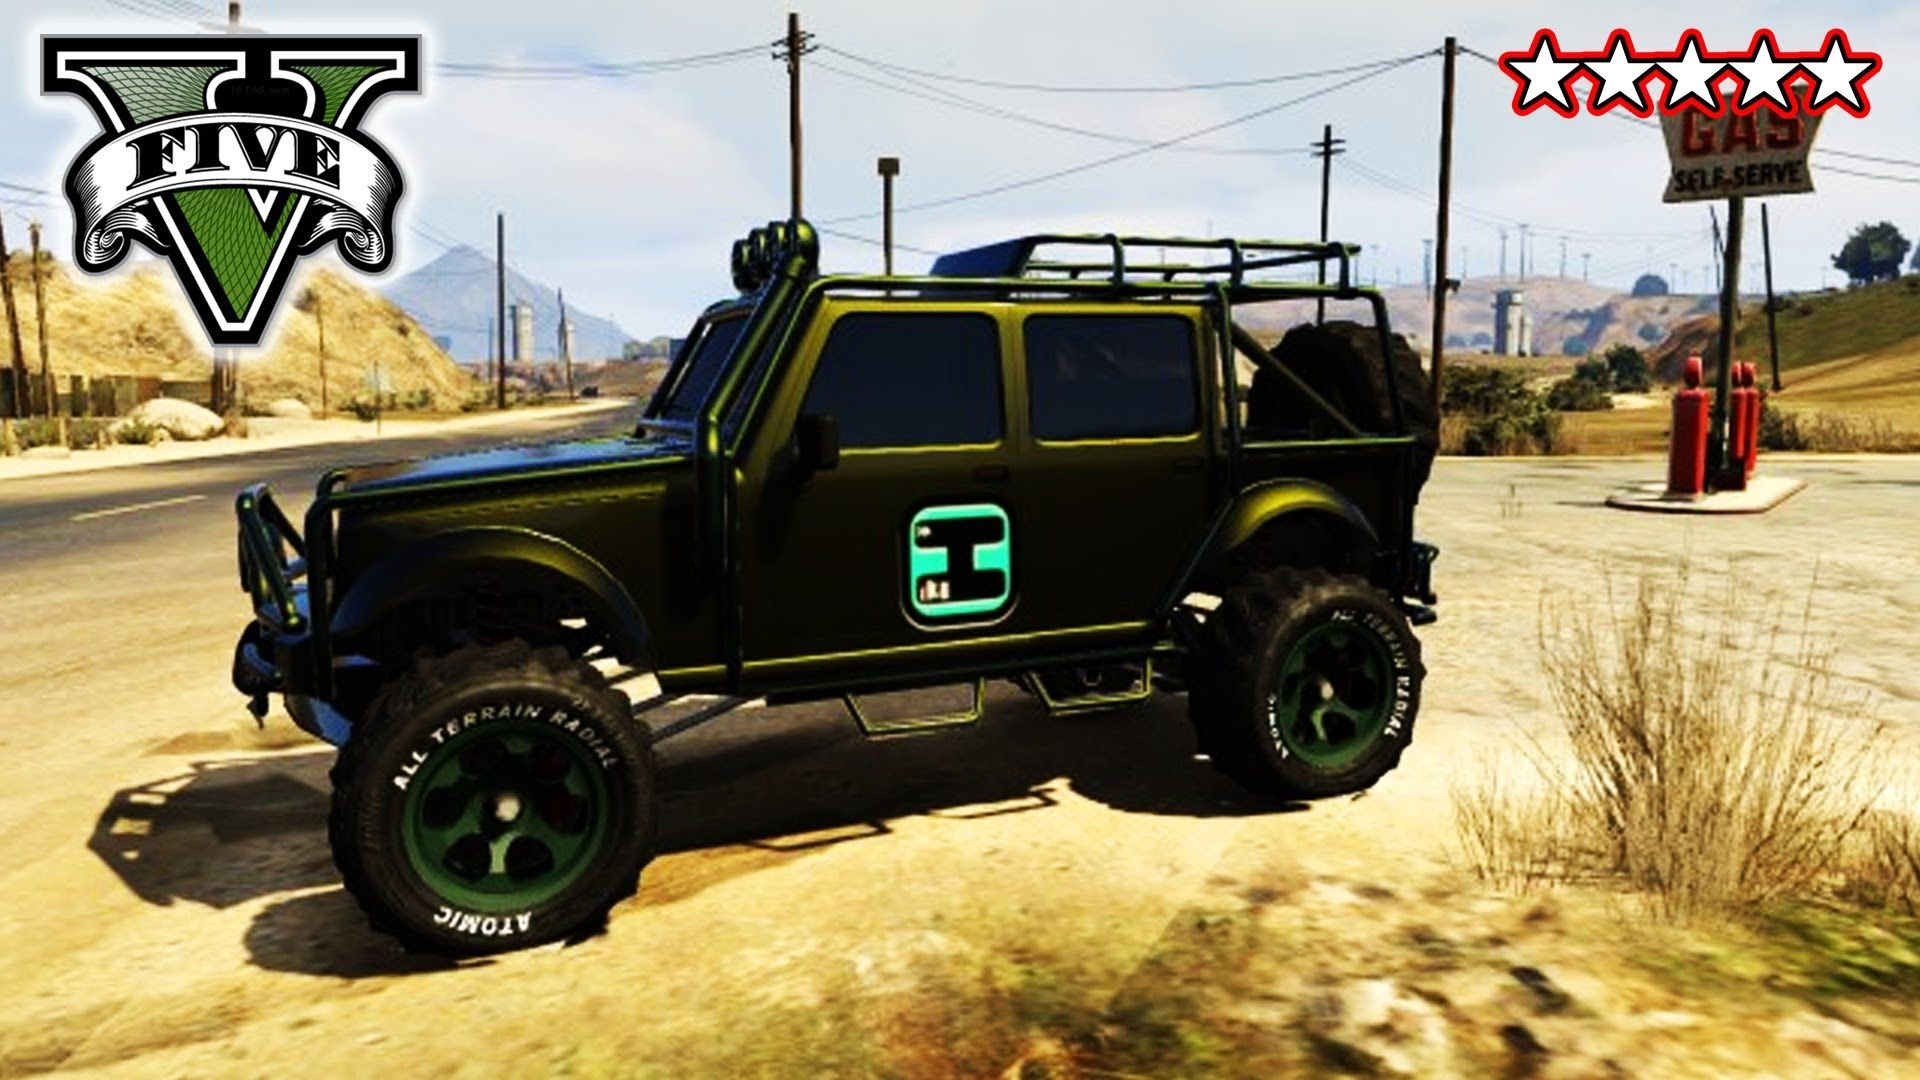 Gta 5 Customizing Trucks Gta Climbing Mount Chiliad Grand